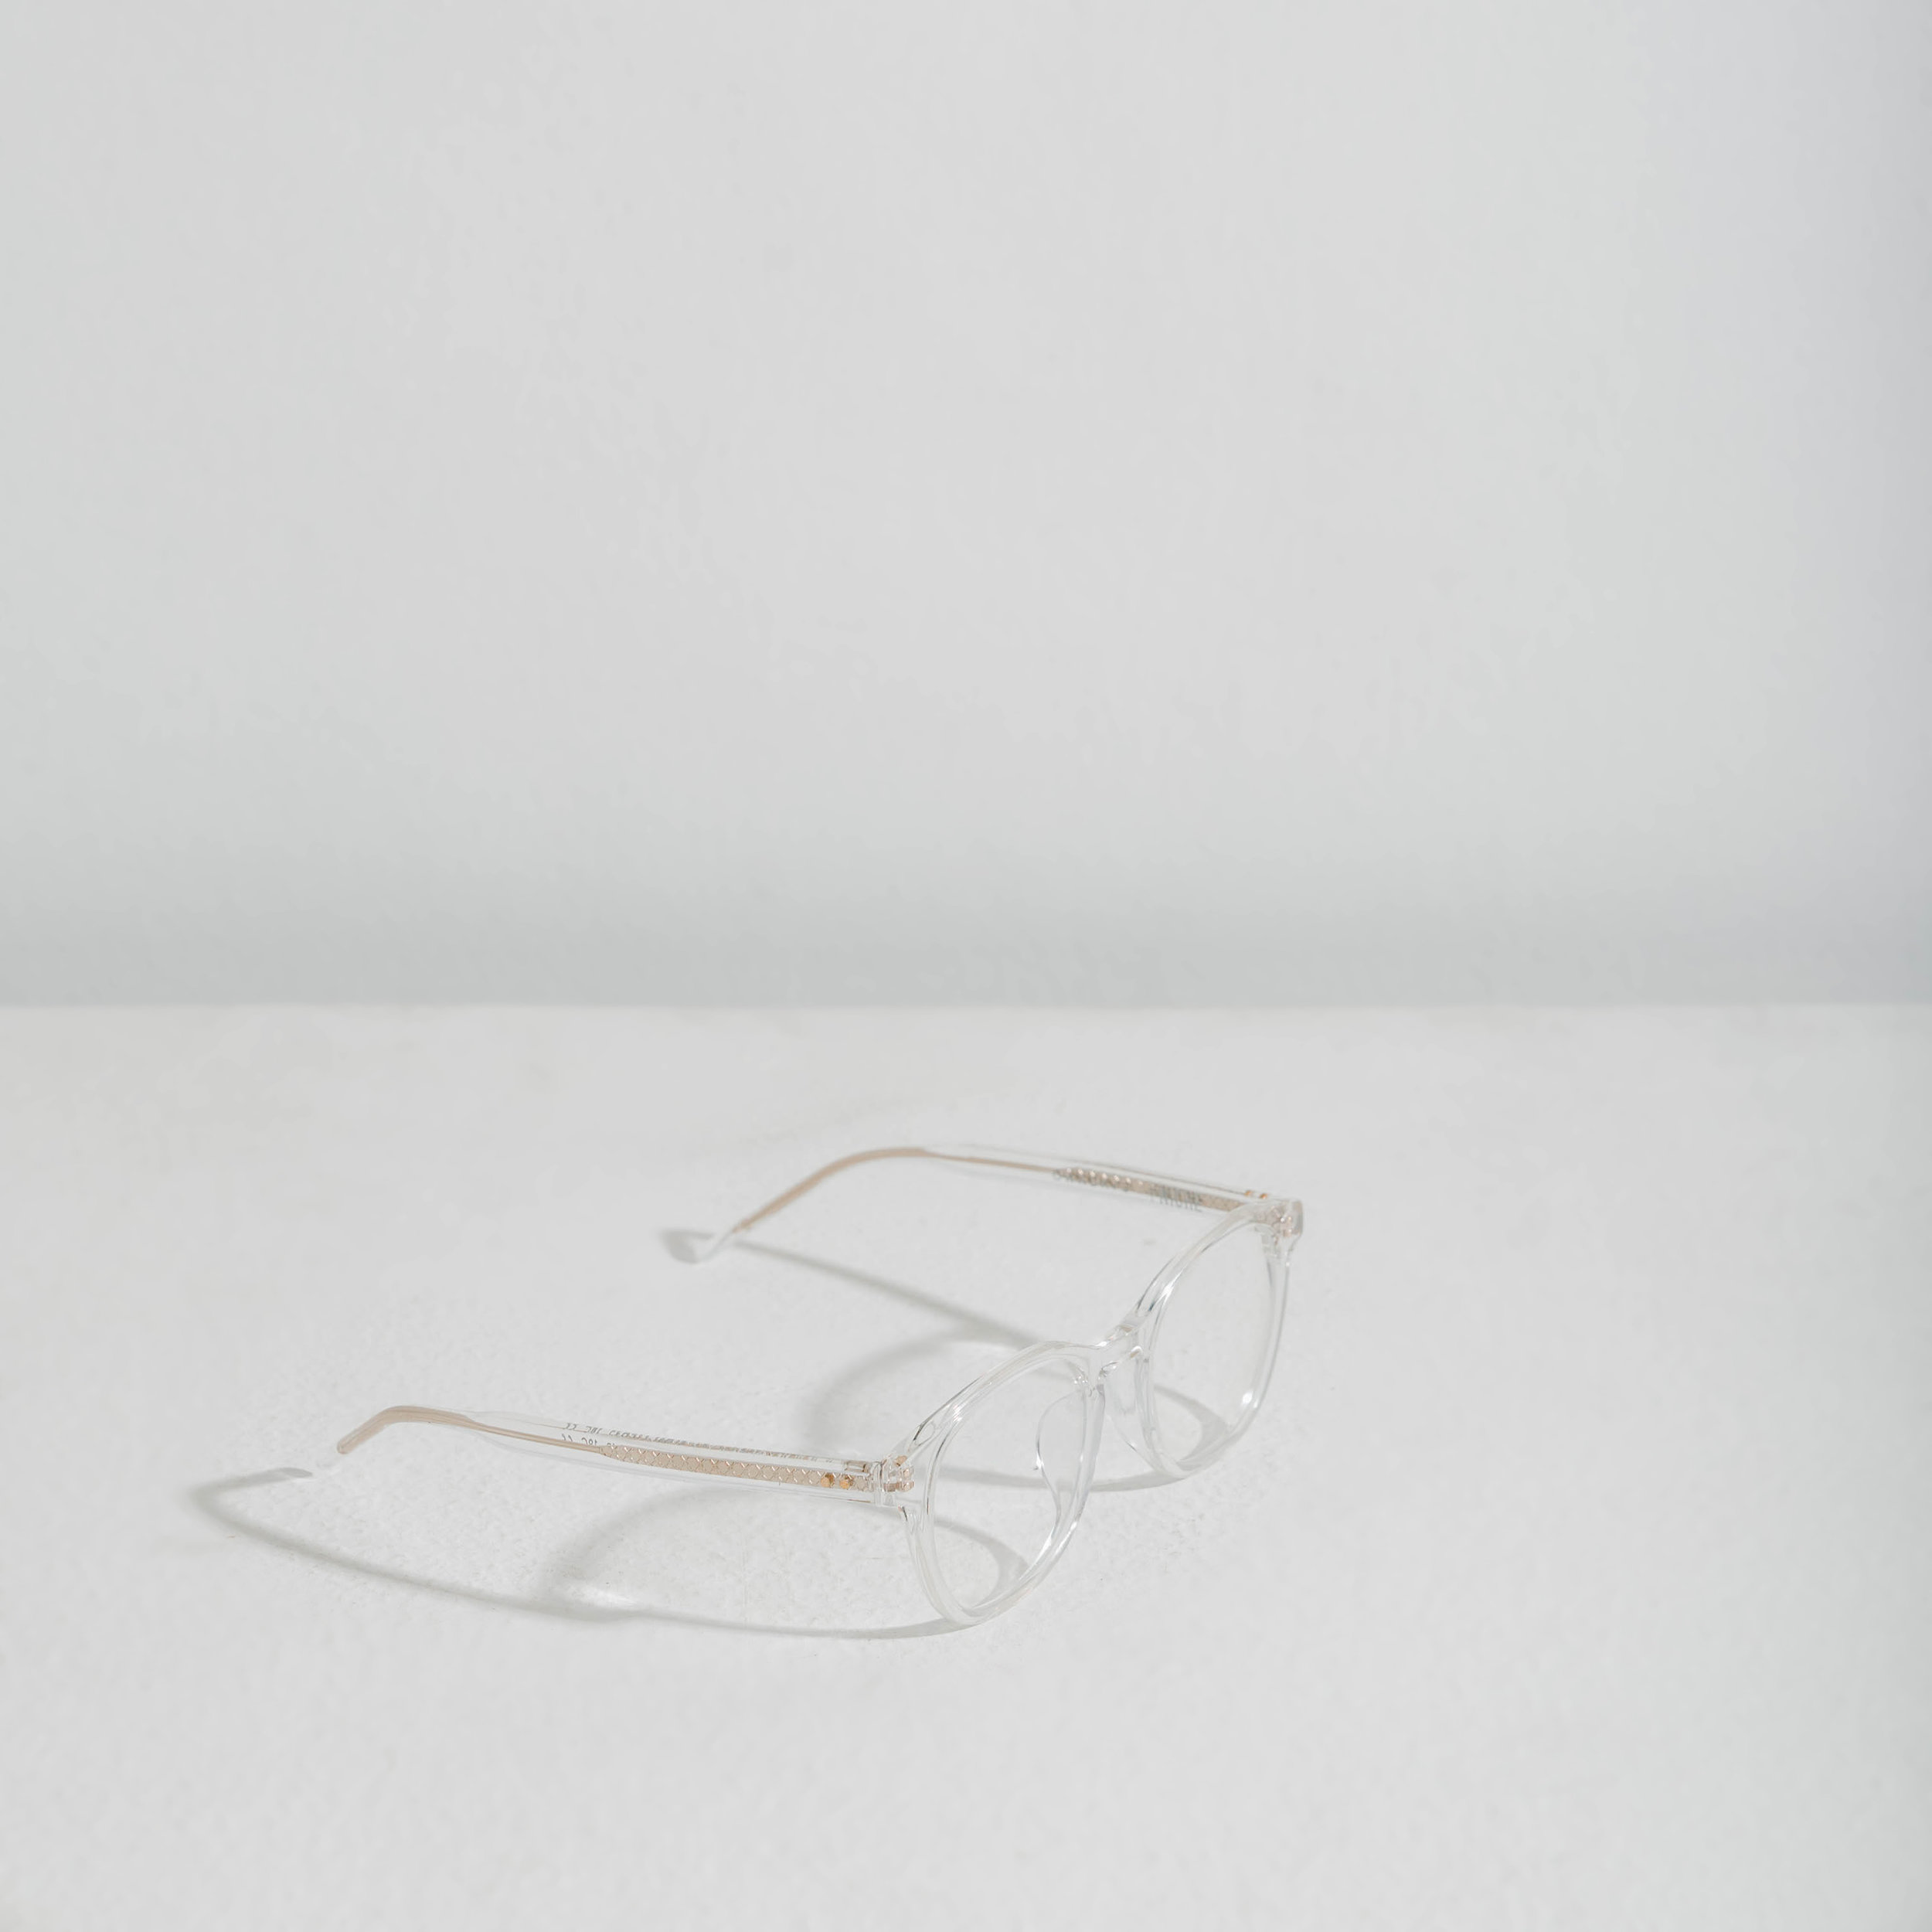 17. OWNDAYS +Niche Clear Glasses